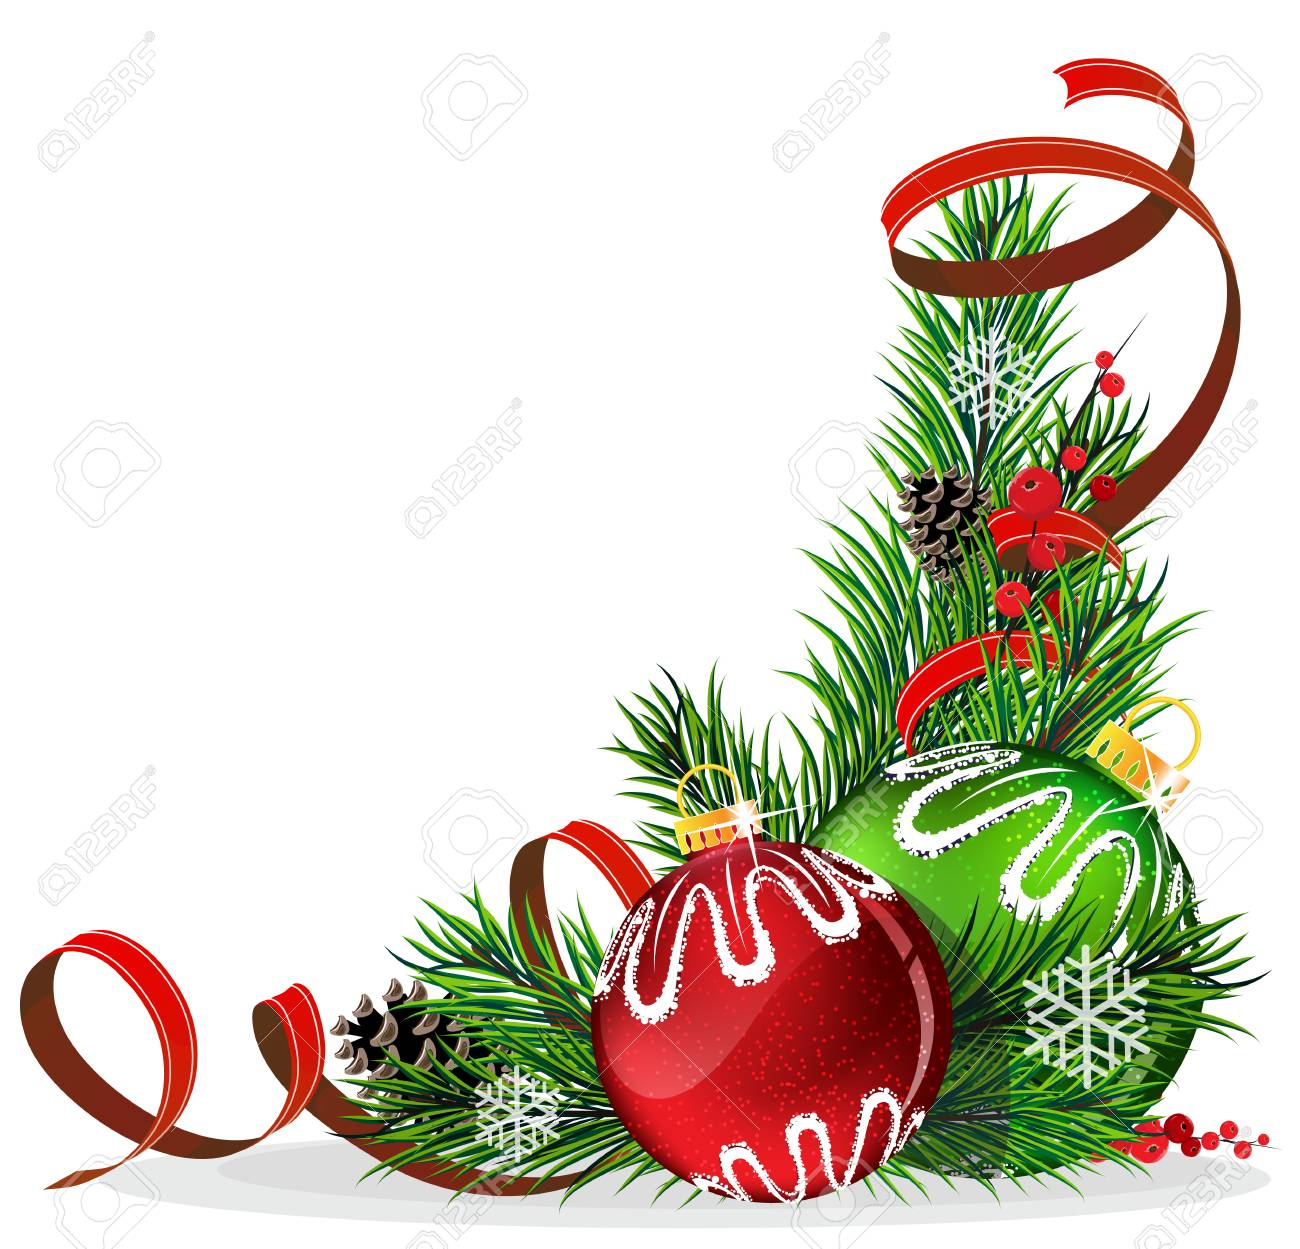 Christmas baubles with ribbon and fir tree branches on white background - 24122944